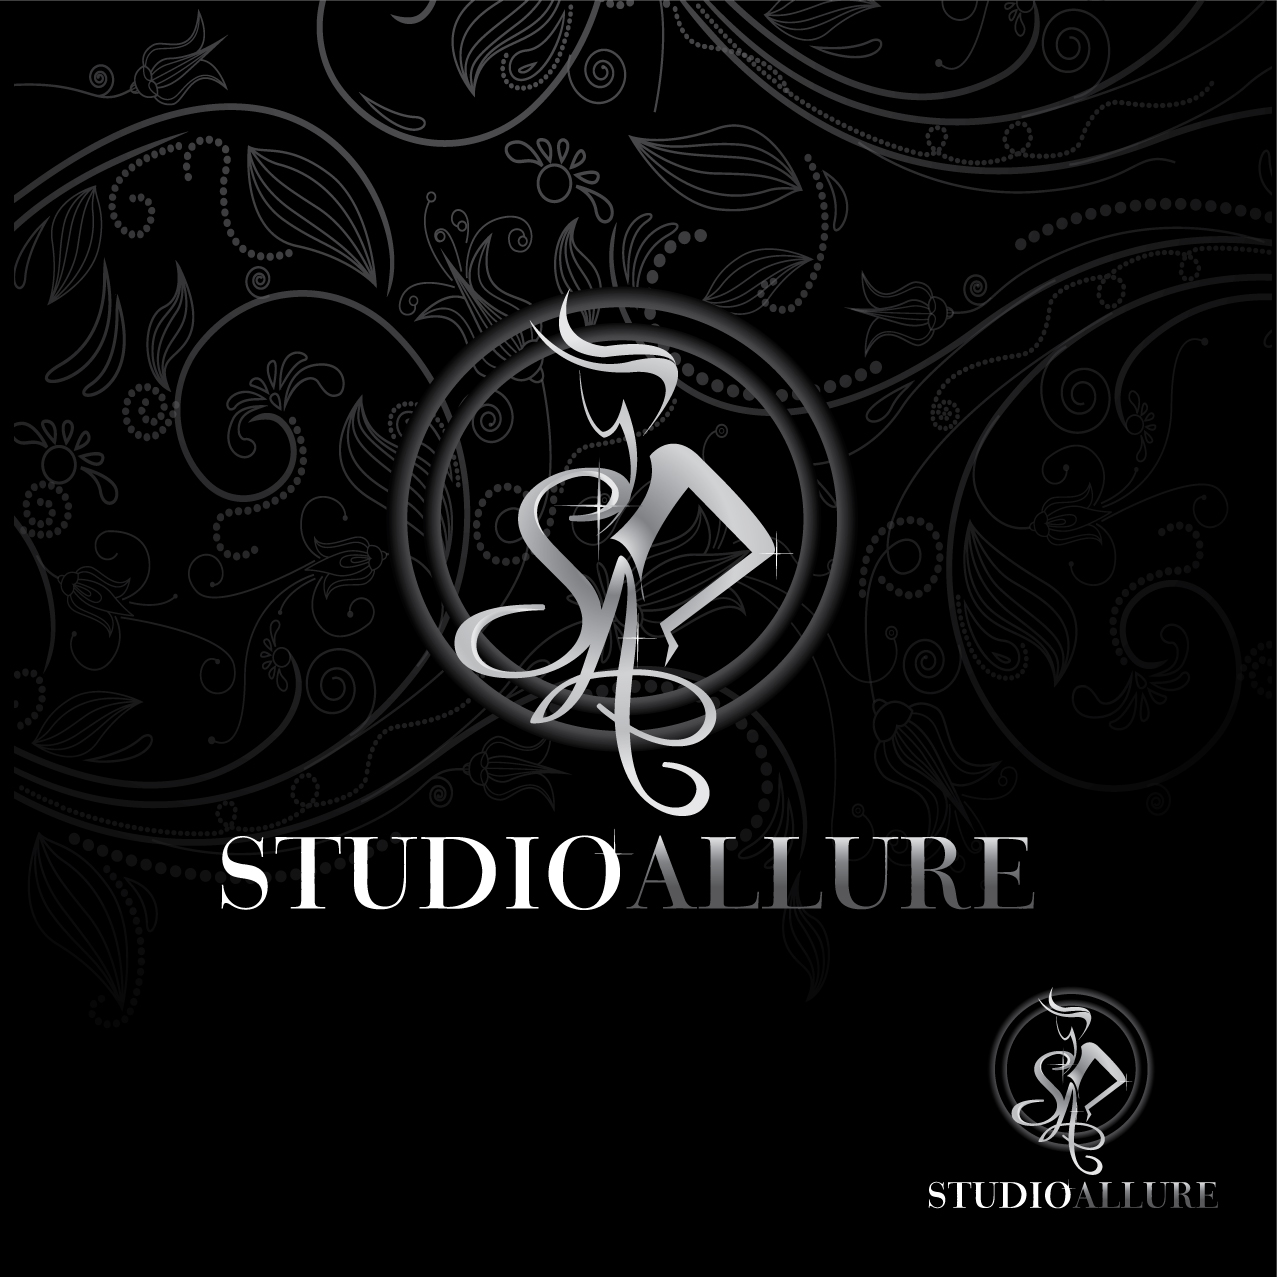 Logo Design by stormbighit - Entry No. 96 in the Logo Design Contest Logo Design Needed for Exciting New Company Studio Allure.